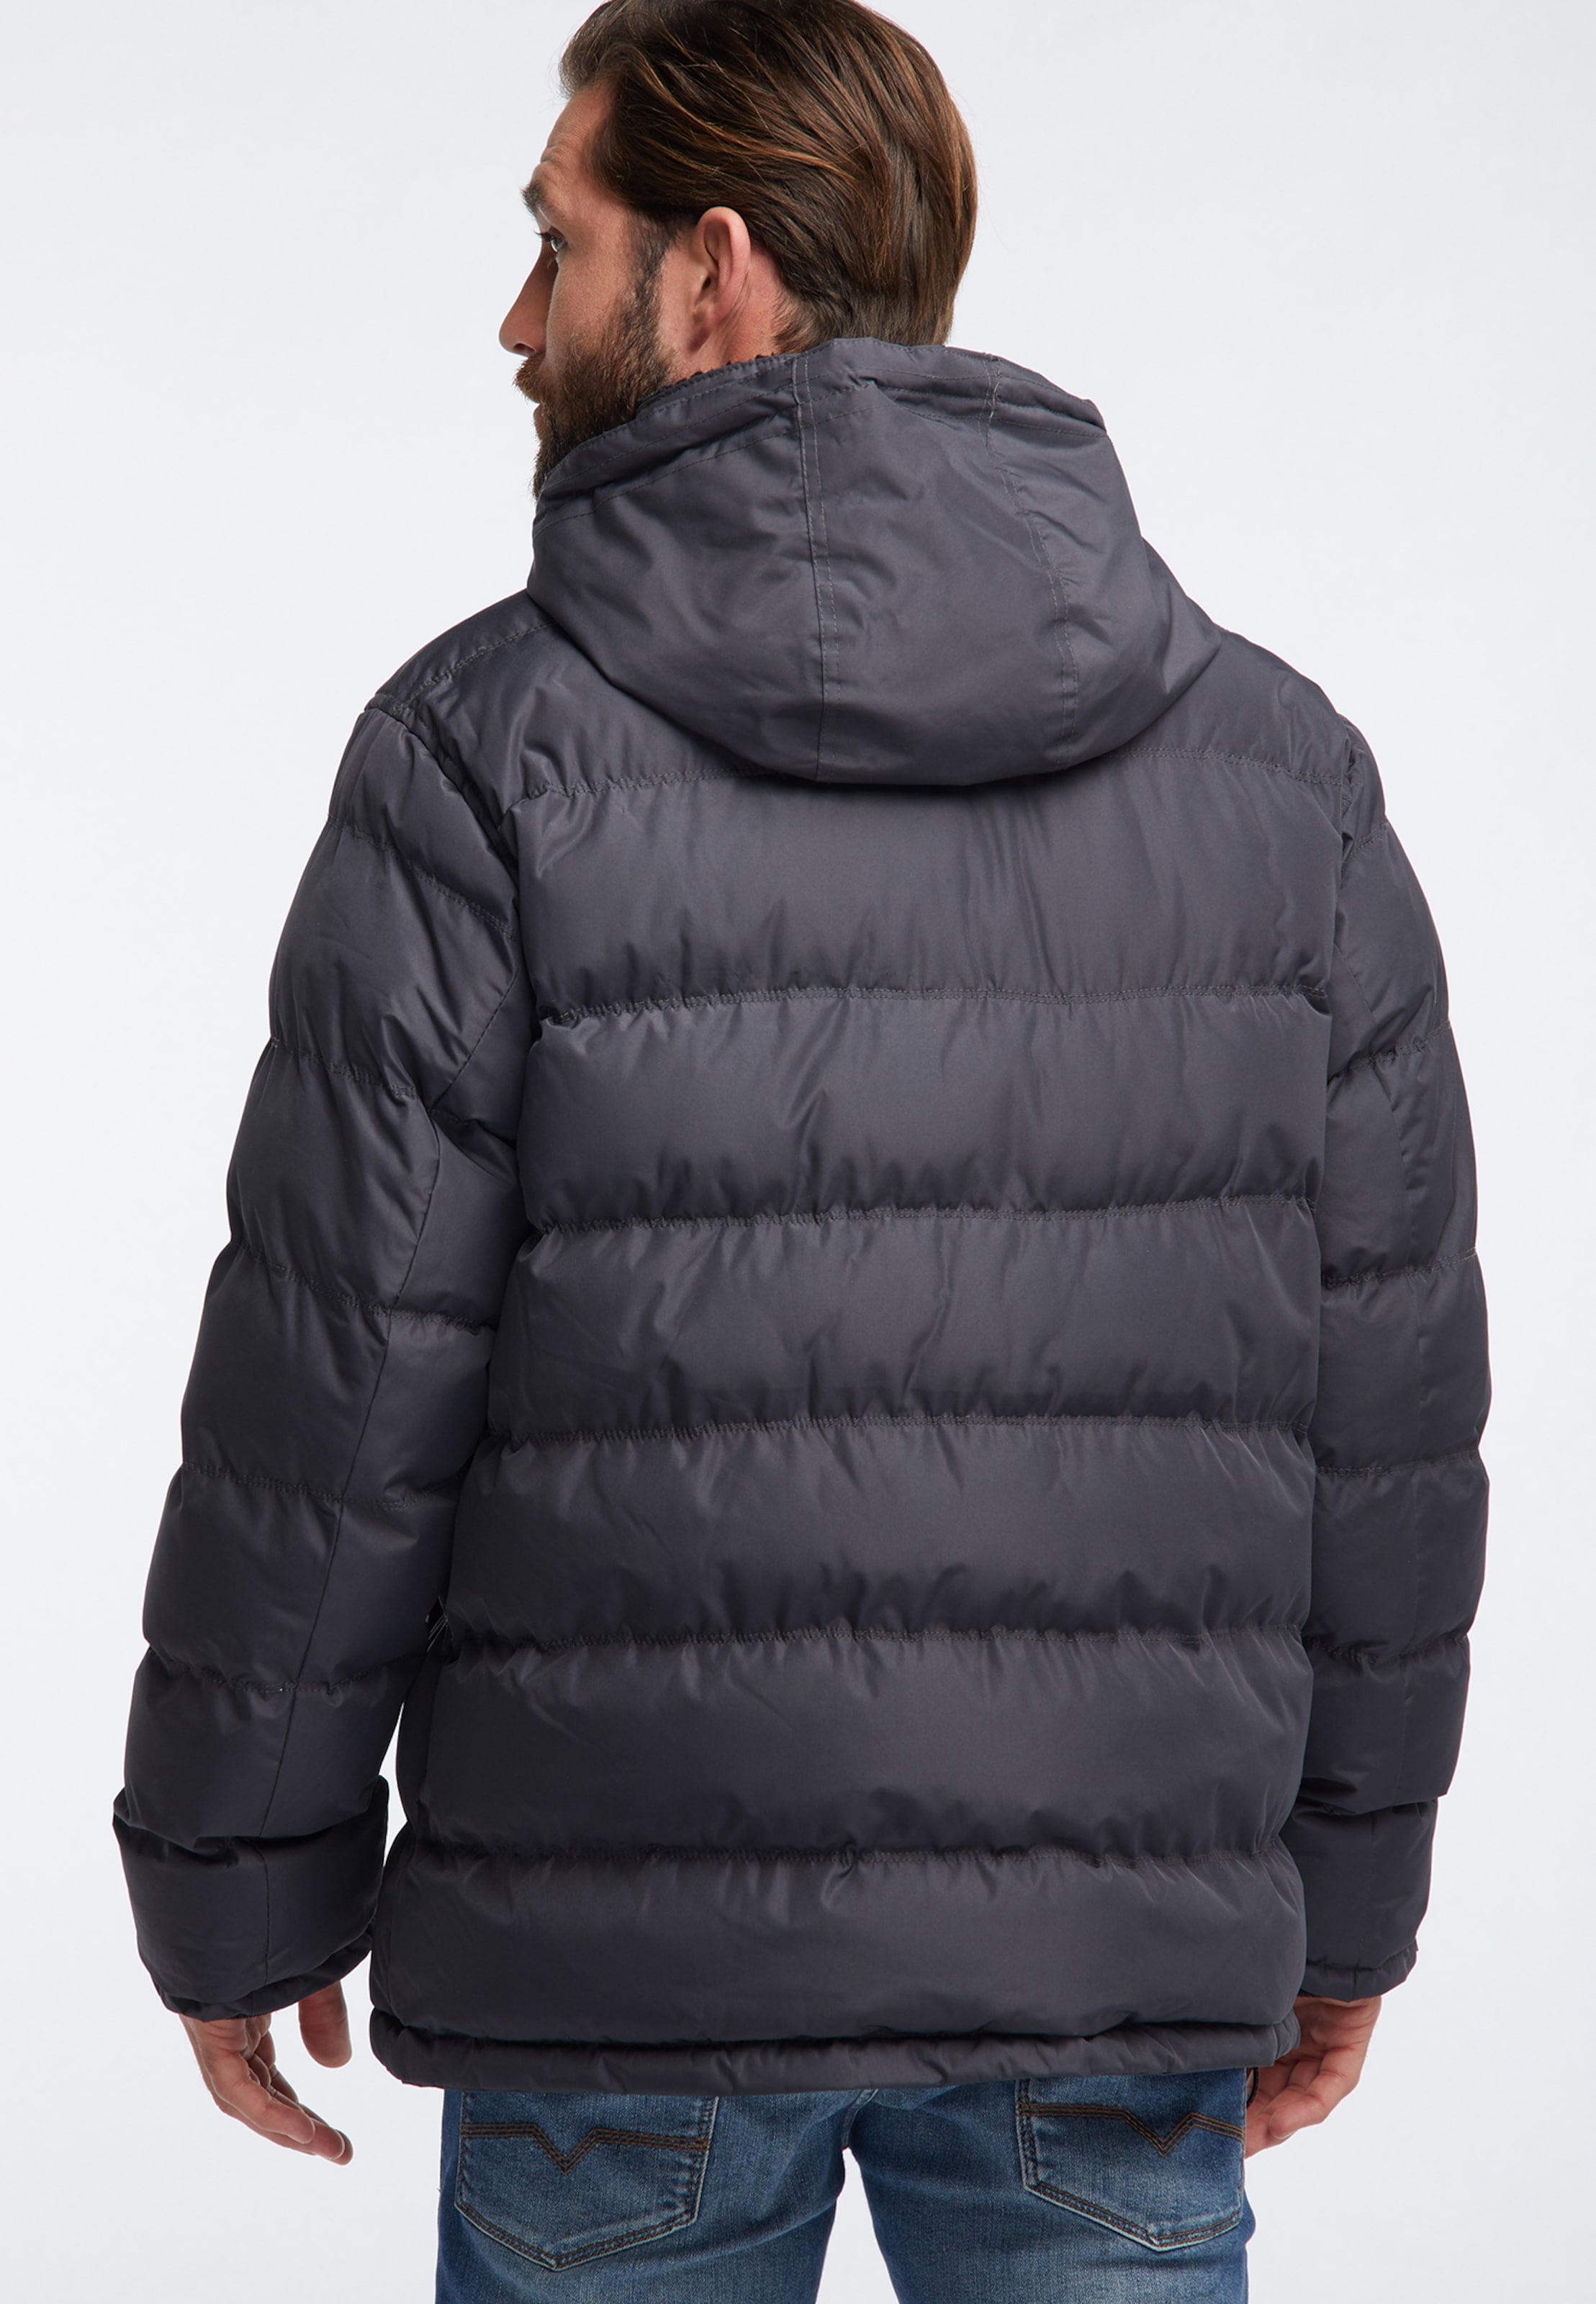 In Graphit Parka Co Hawkeamp; OiPXukZT